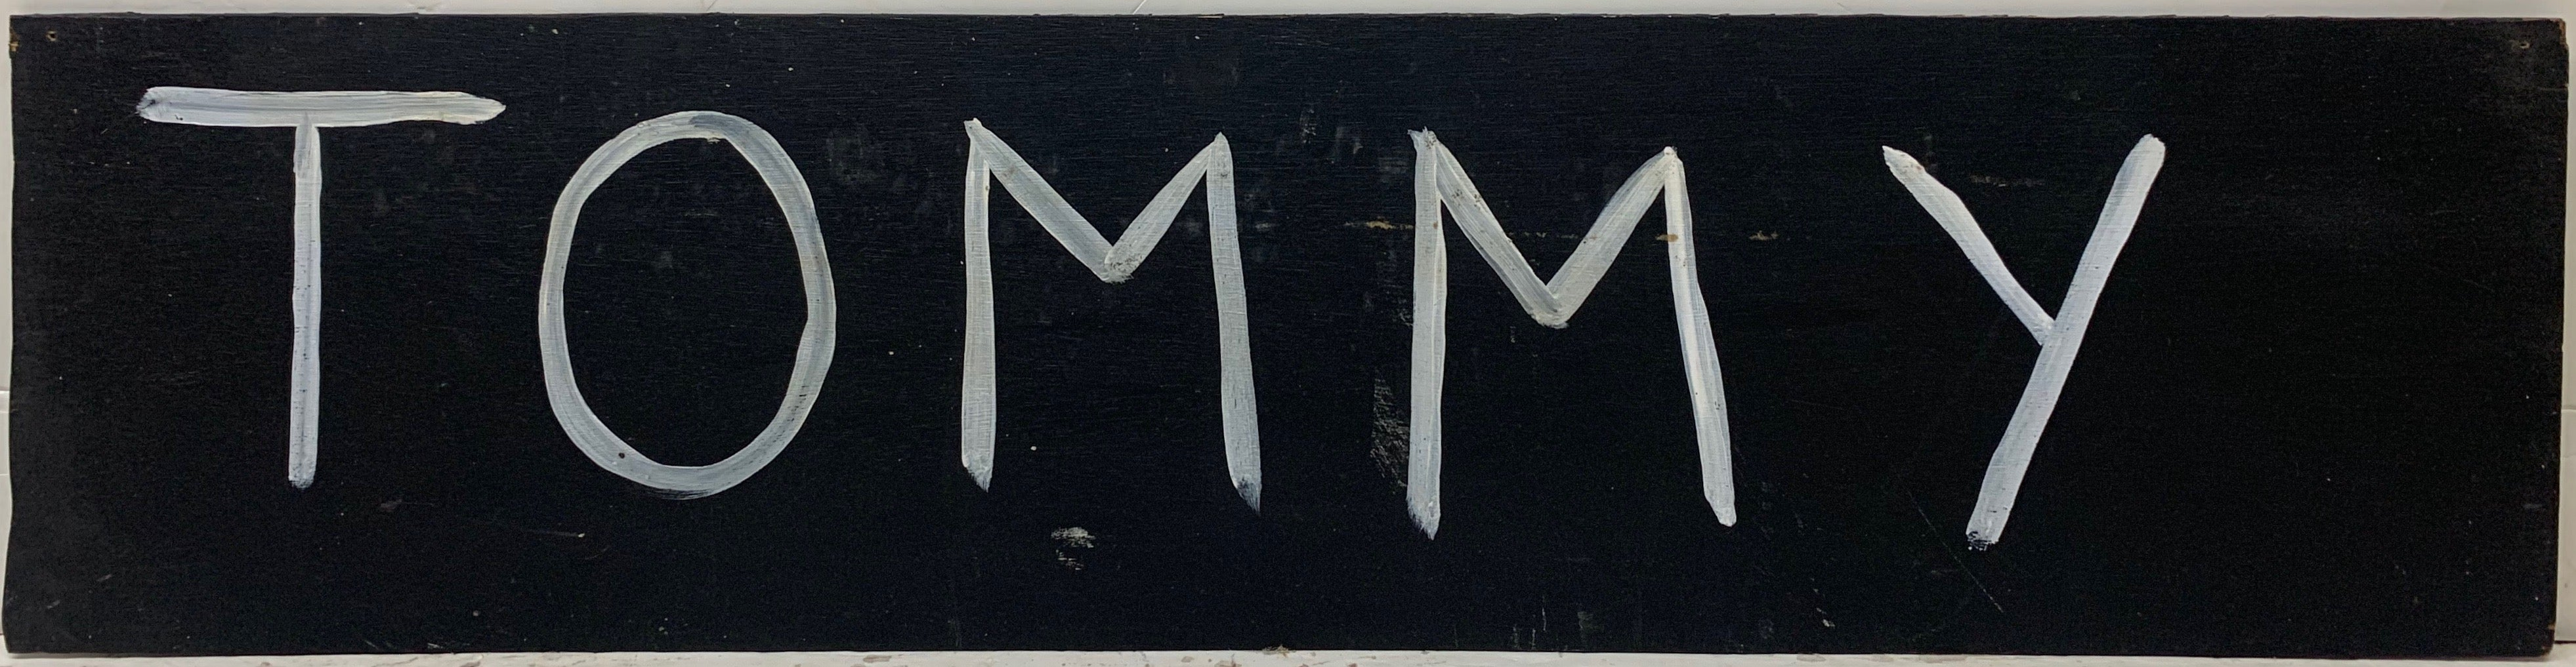 A Tommy Cheng painting of his signature, Tommy, painted in white against a black background.